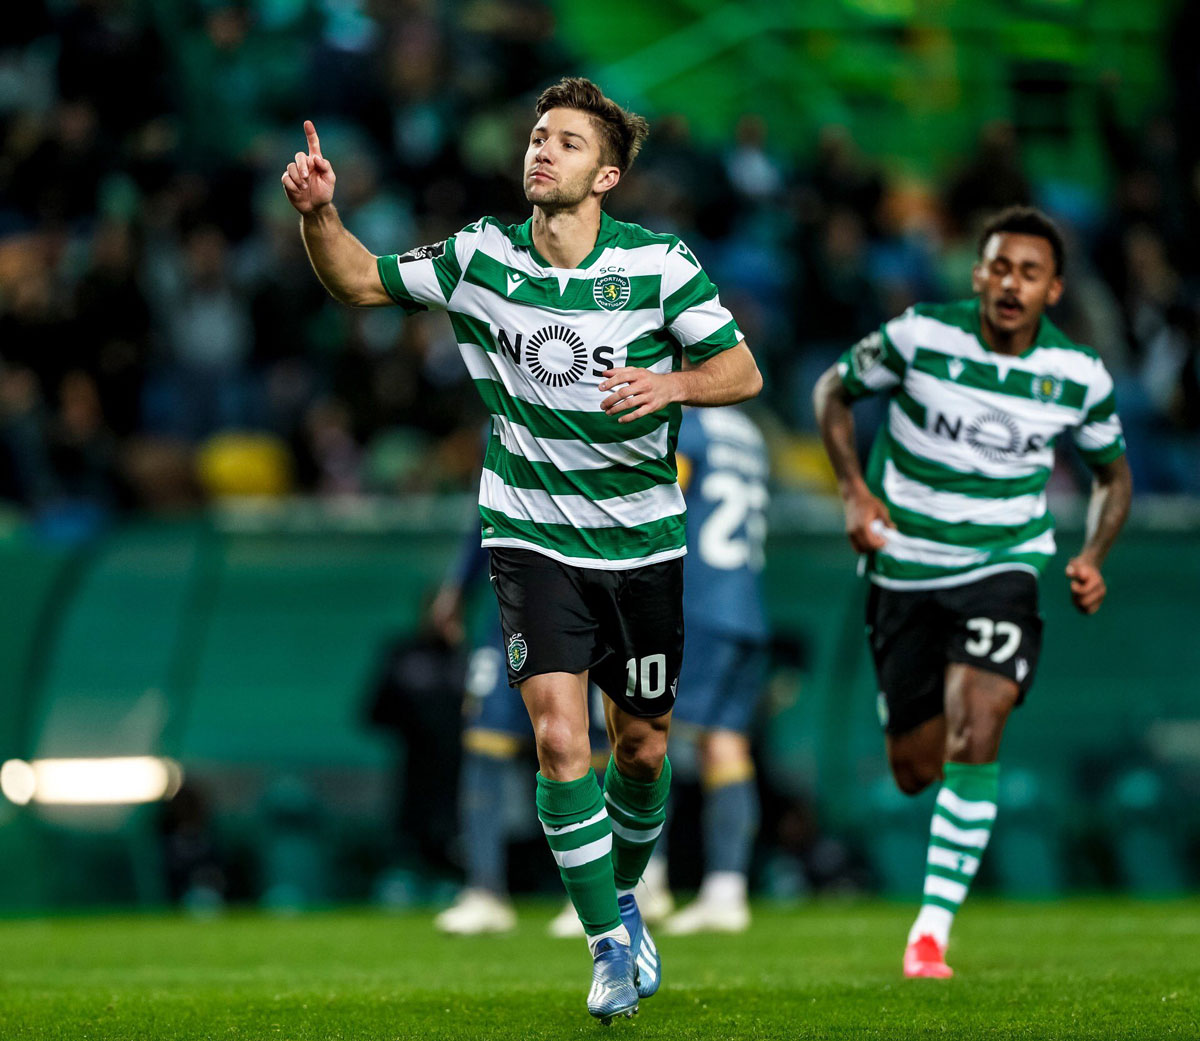 Photo of Sporting tied with FC Porto in Alvalade